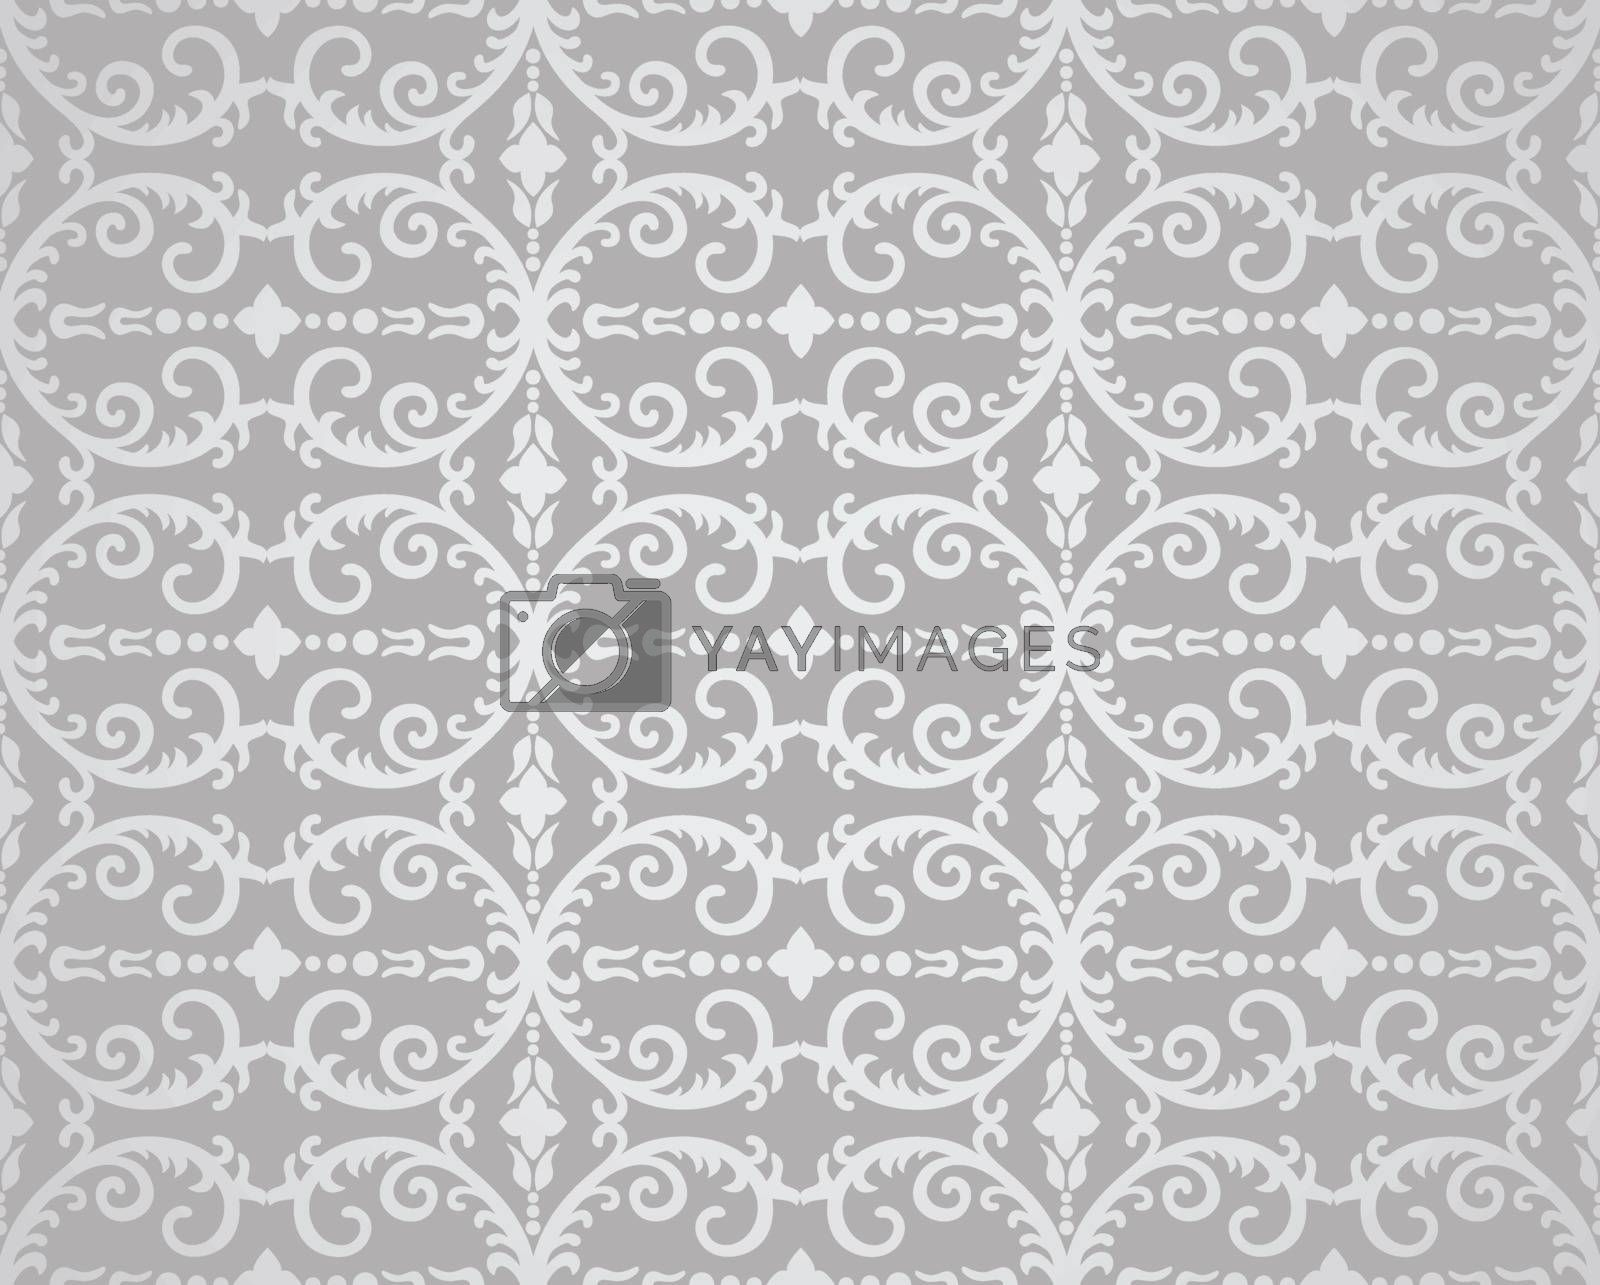 Seamless silver flowers and foliage wallpaper pattern. This image is a vector illustration.